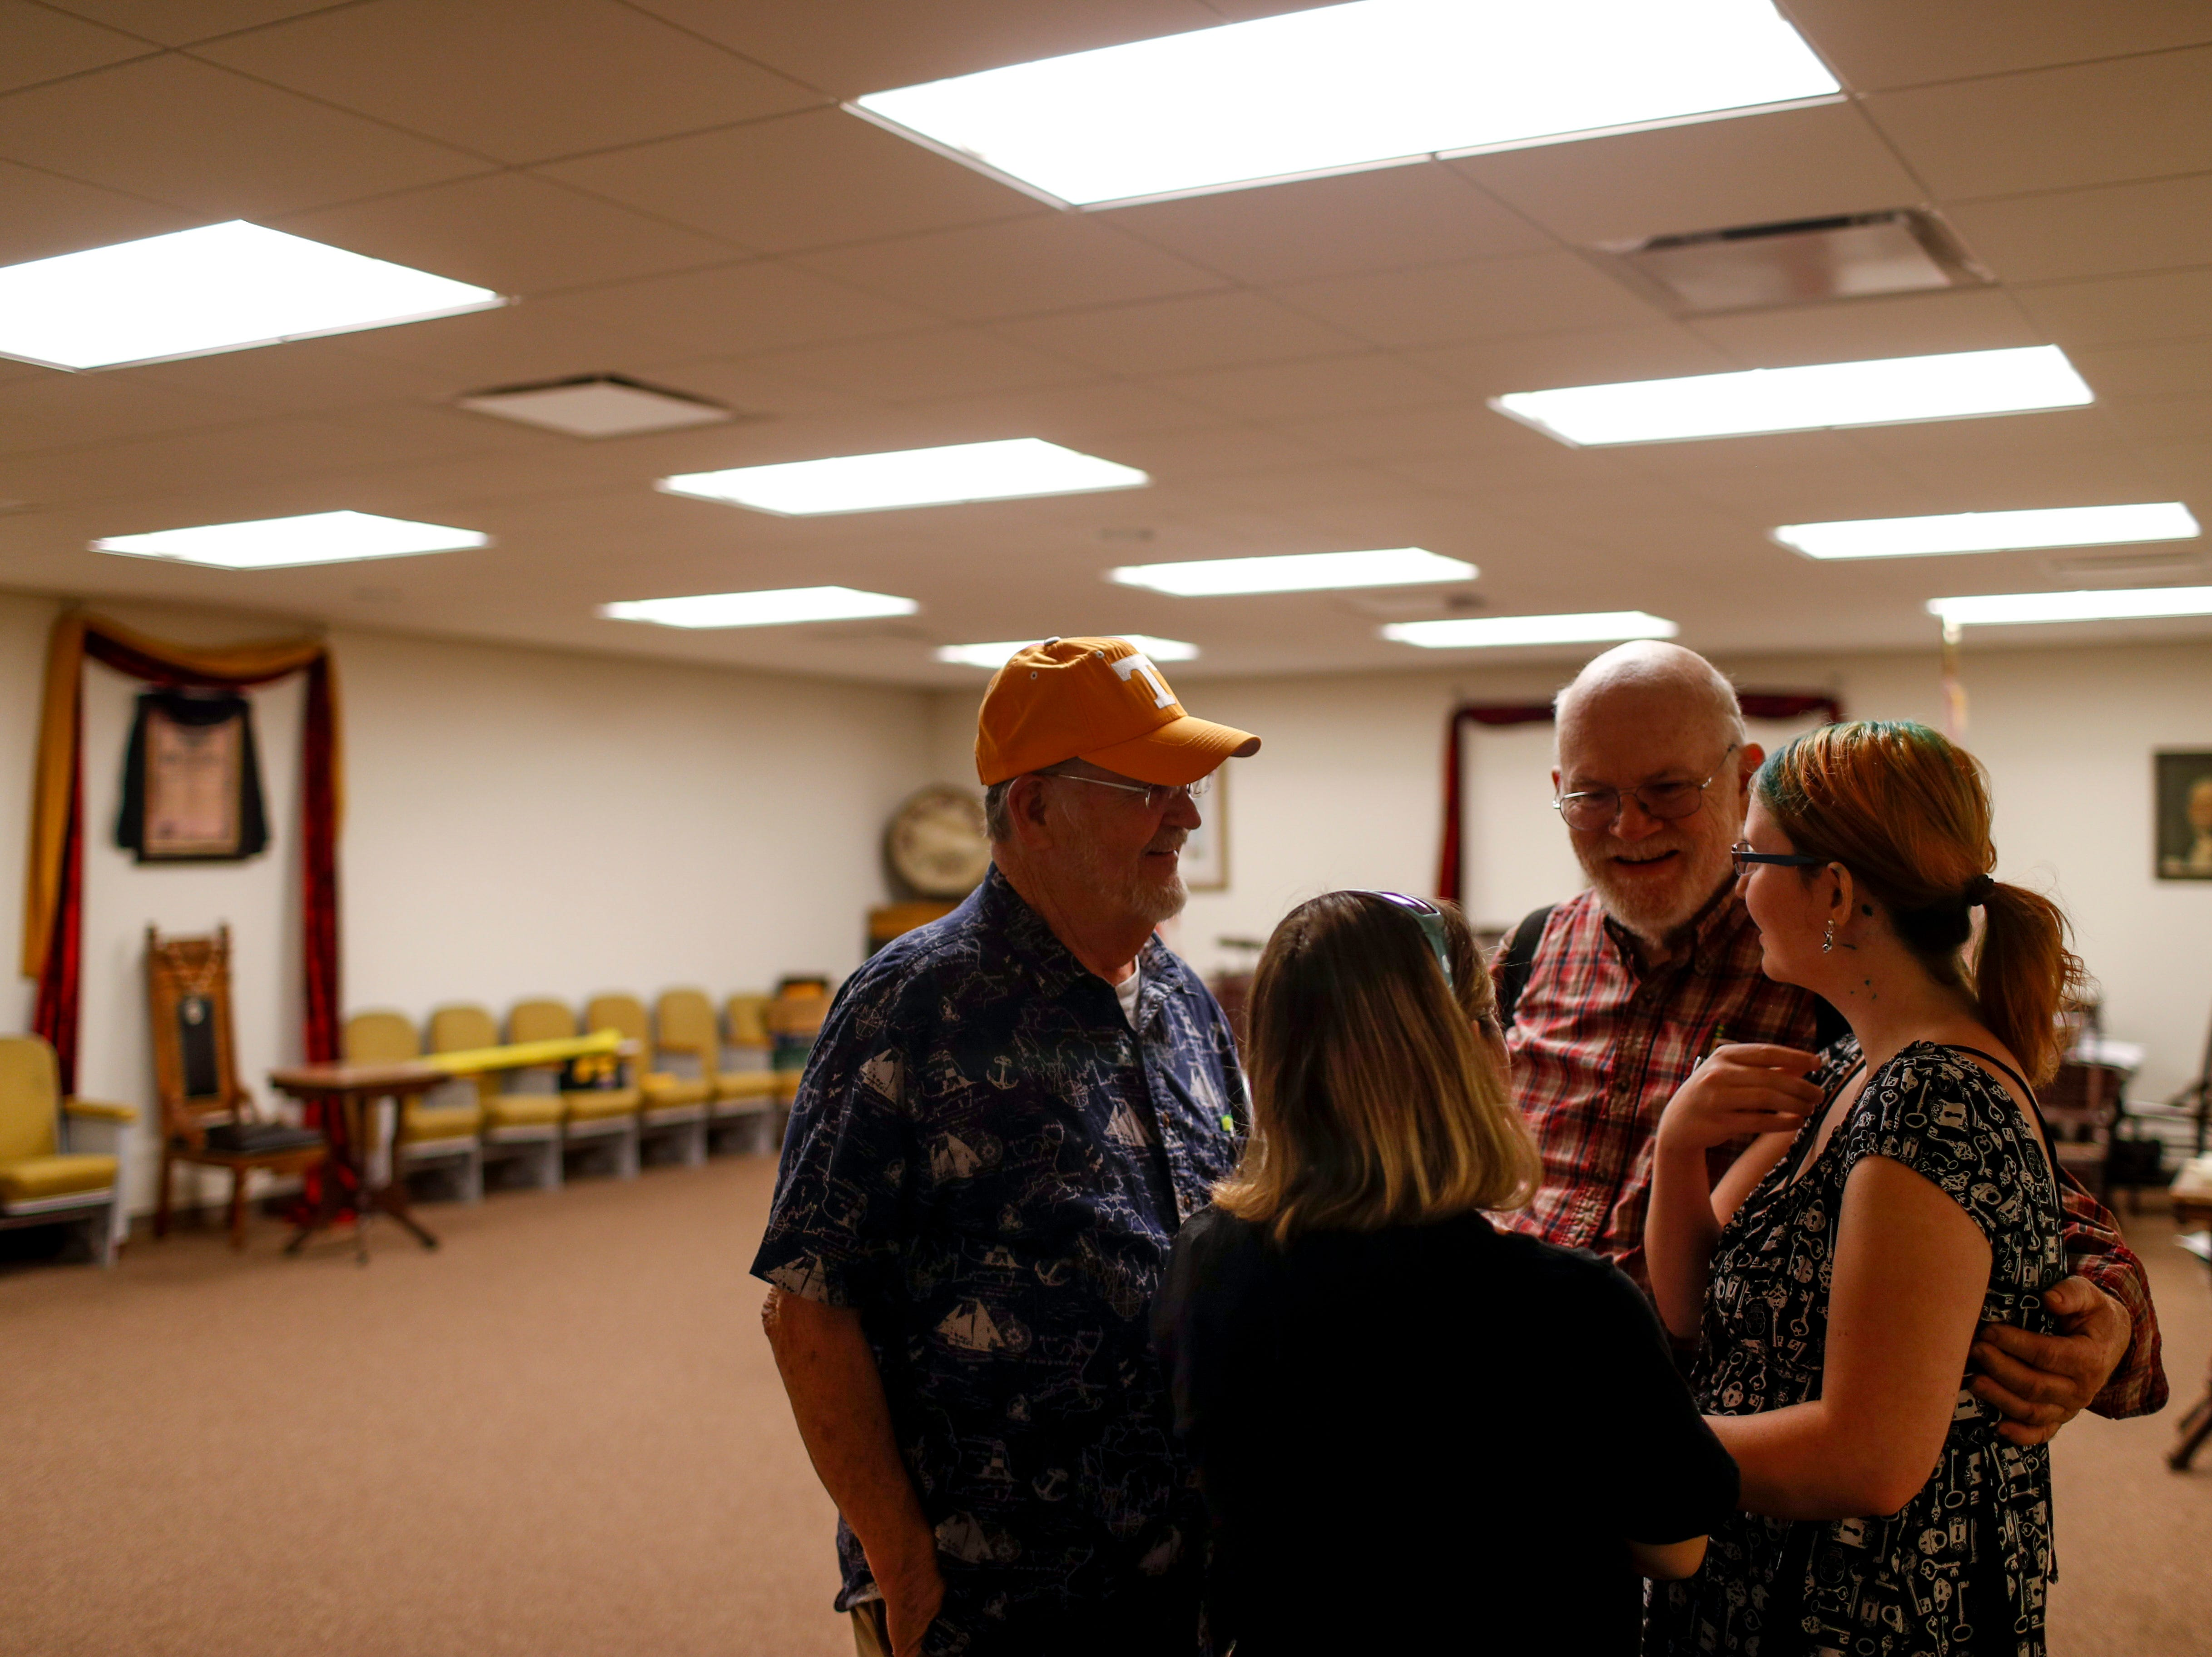 Bobby Haskins and Carl Edwards chat with prospective members of the society at Odd Fellow Lodge in Clarksville, Tenn., on Tuesday, April 23, 2019.